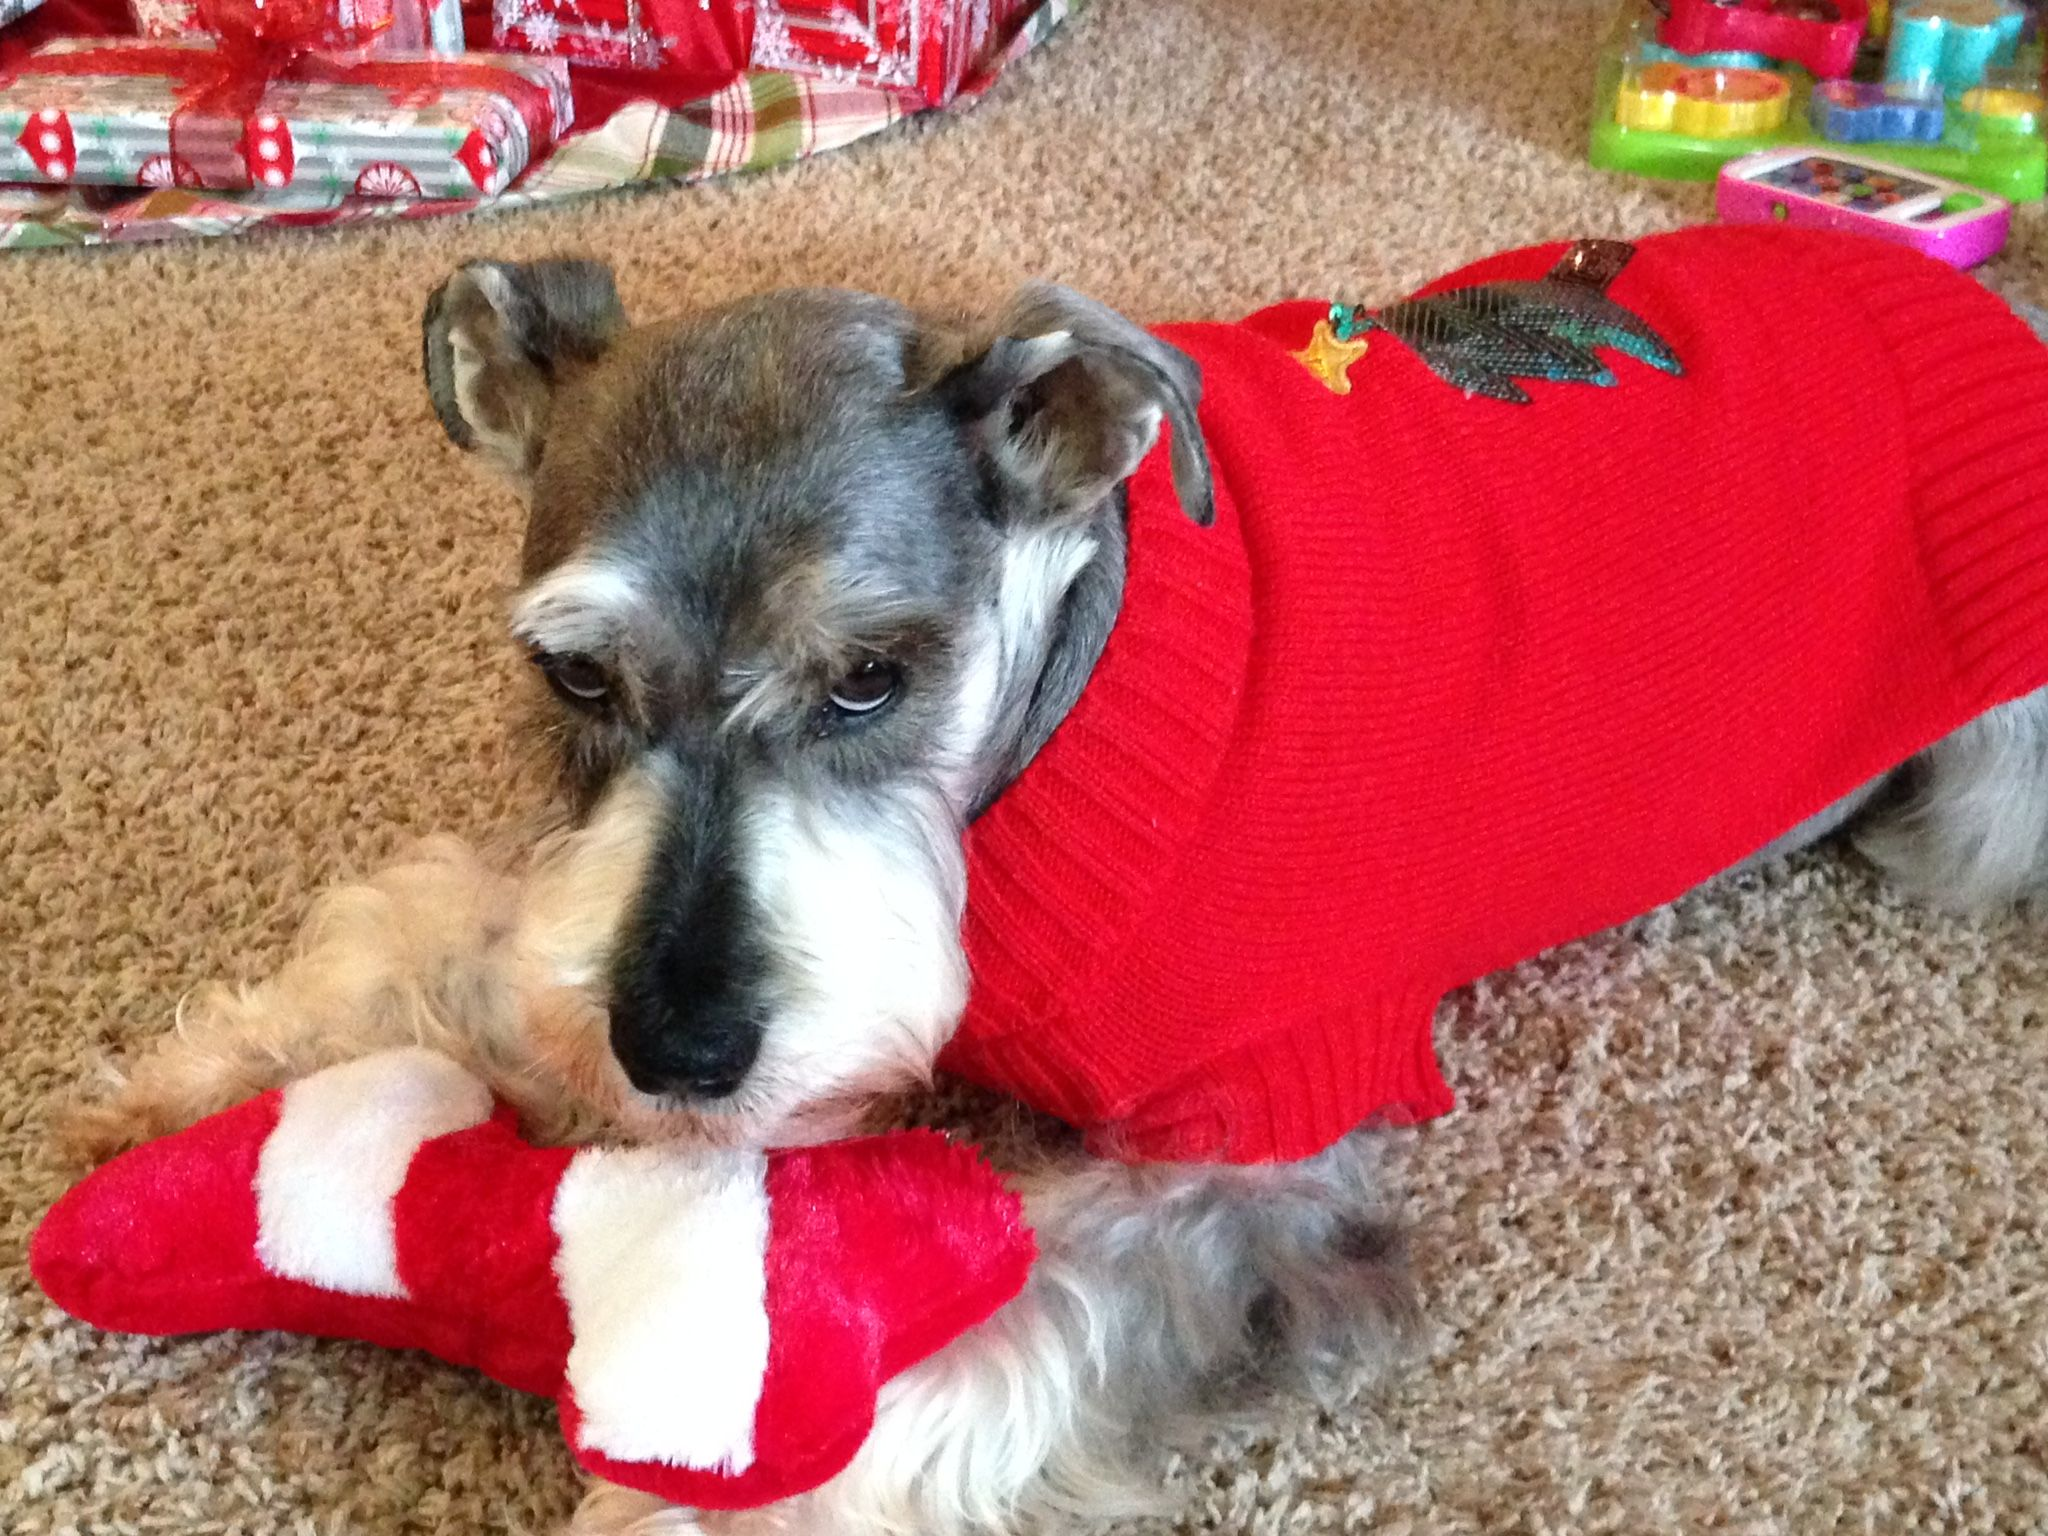 Pin by Valerie Hunt on Schnauzer's make me smile! Aww